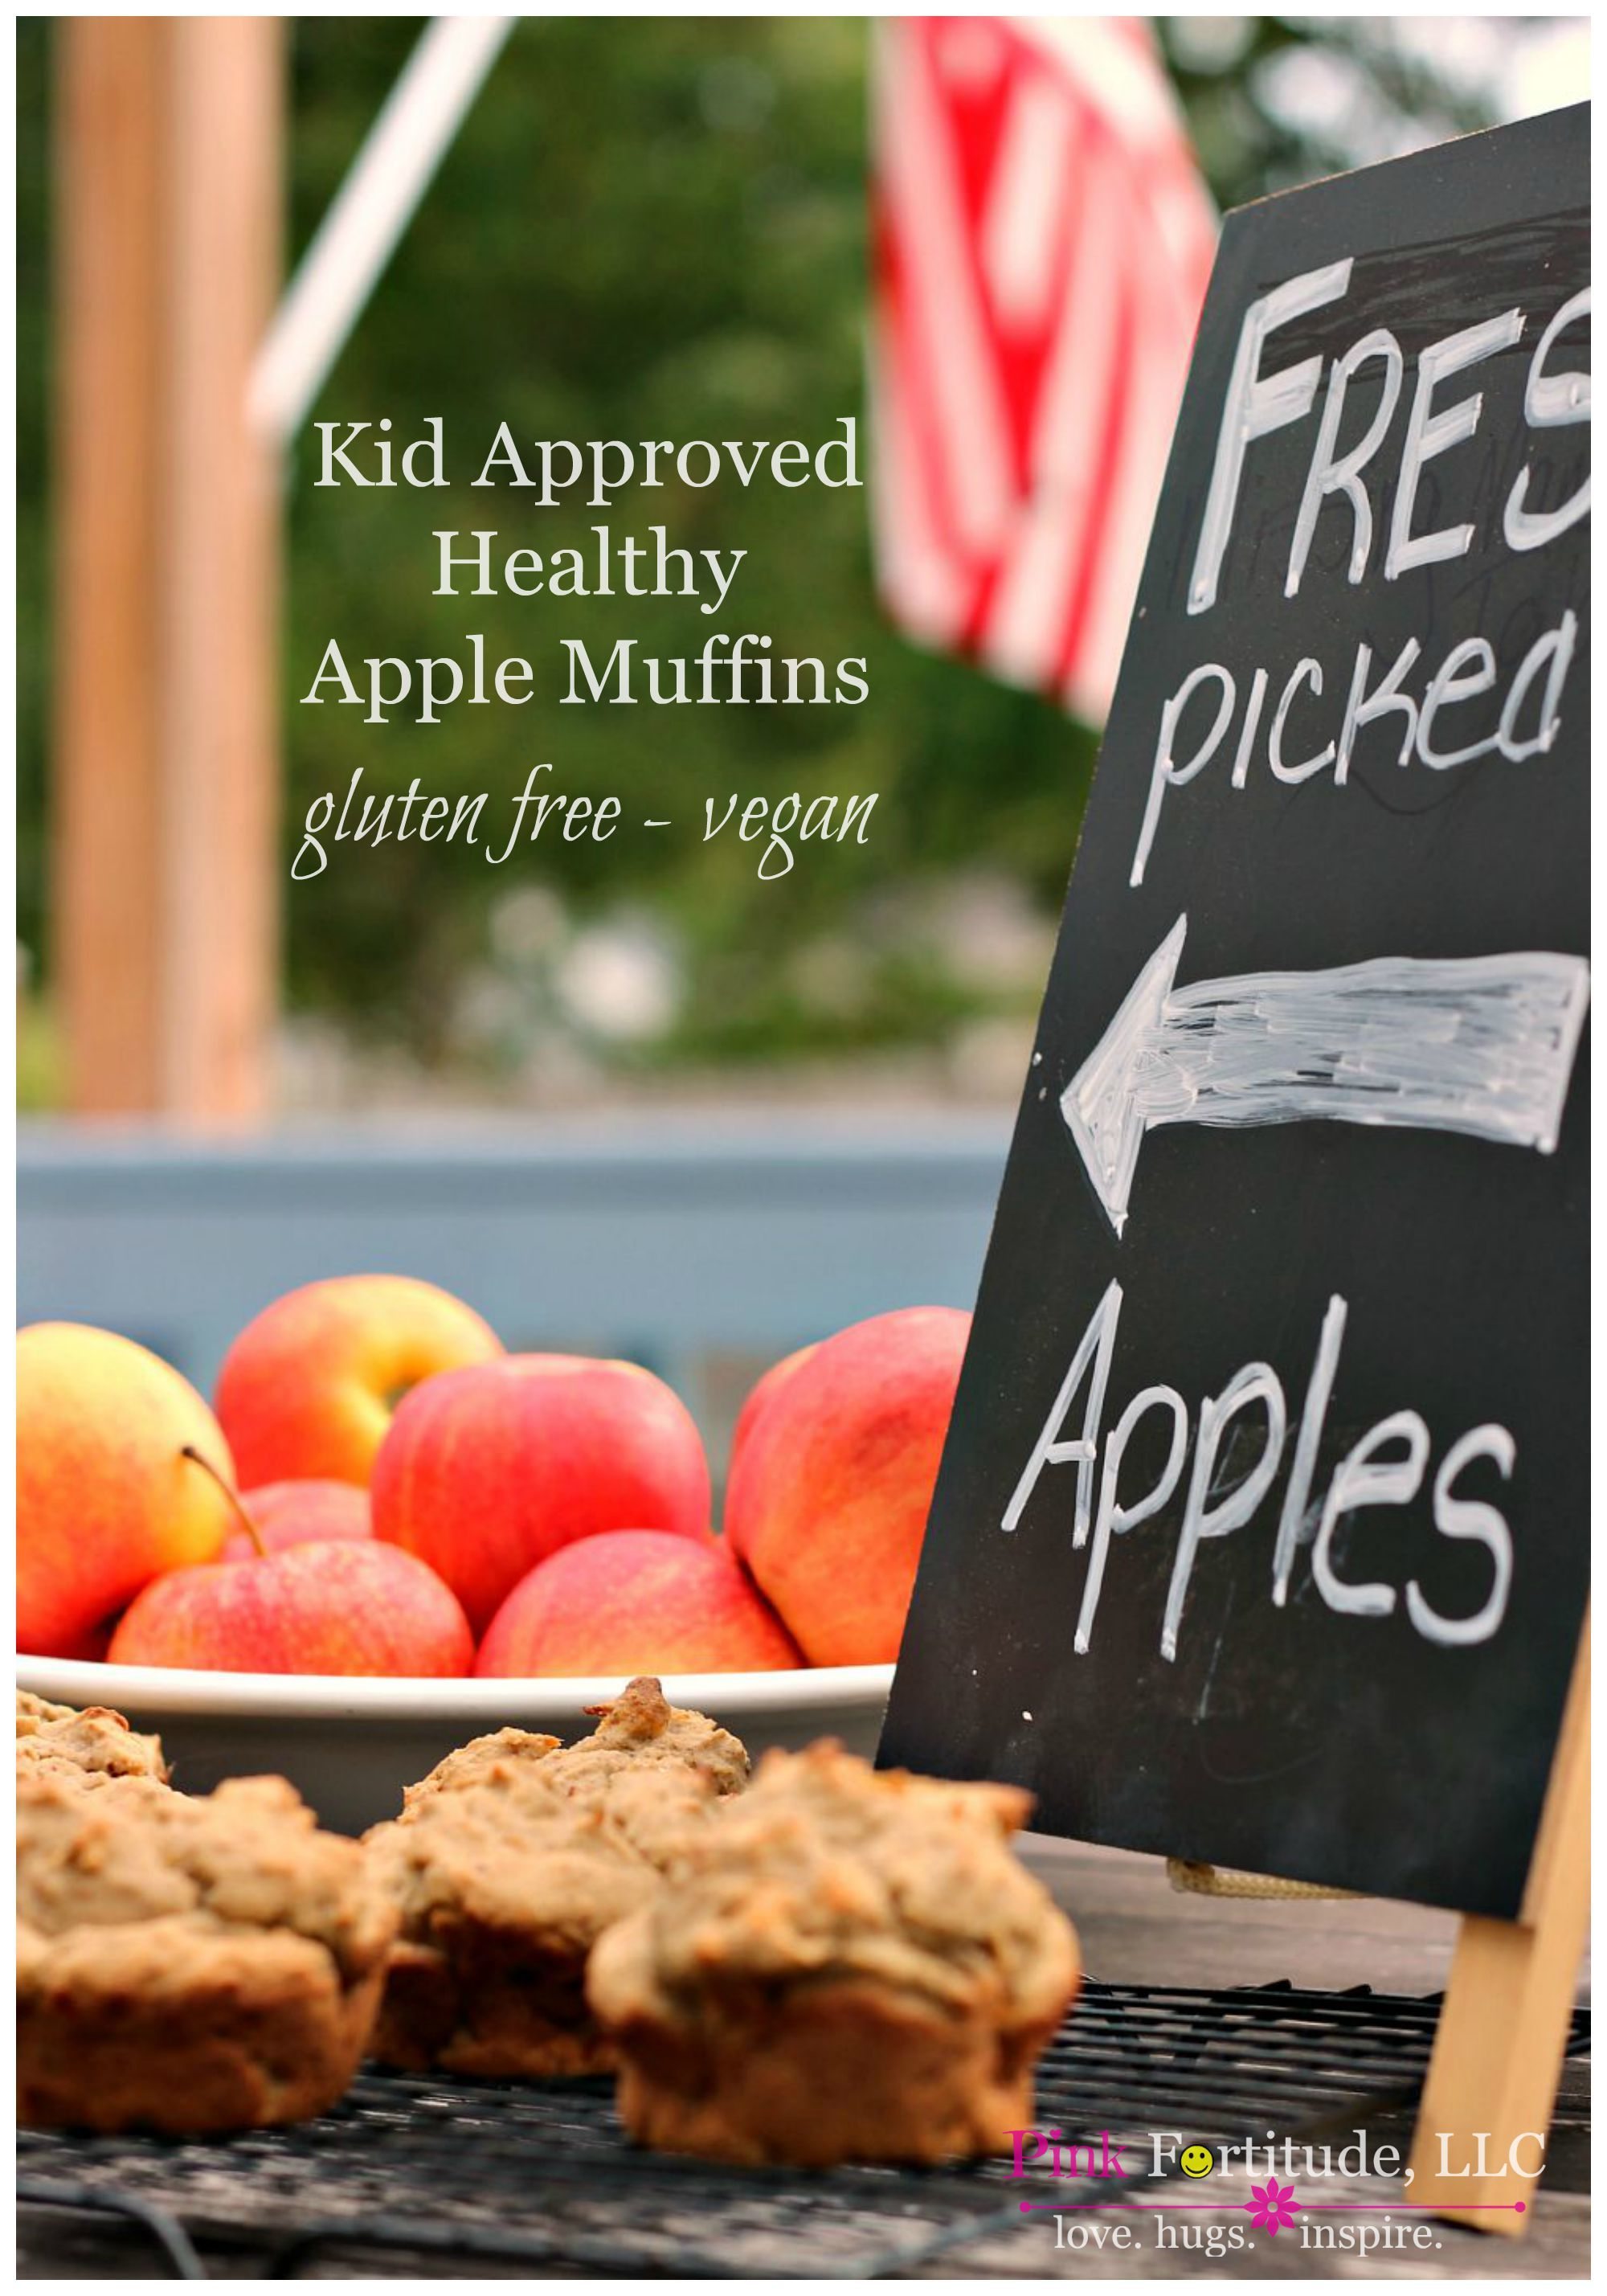 Kid-Approved-Healthy-Apple-Muffins-gluten-free-vegan-by-coconutheadsurvivalguide.com_